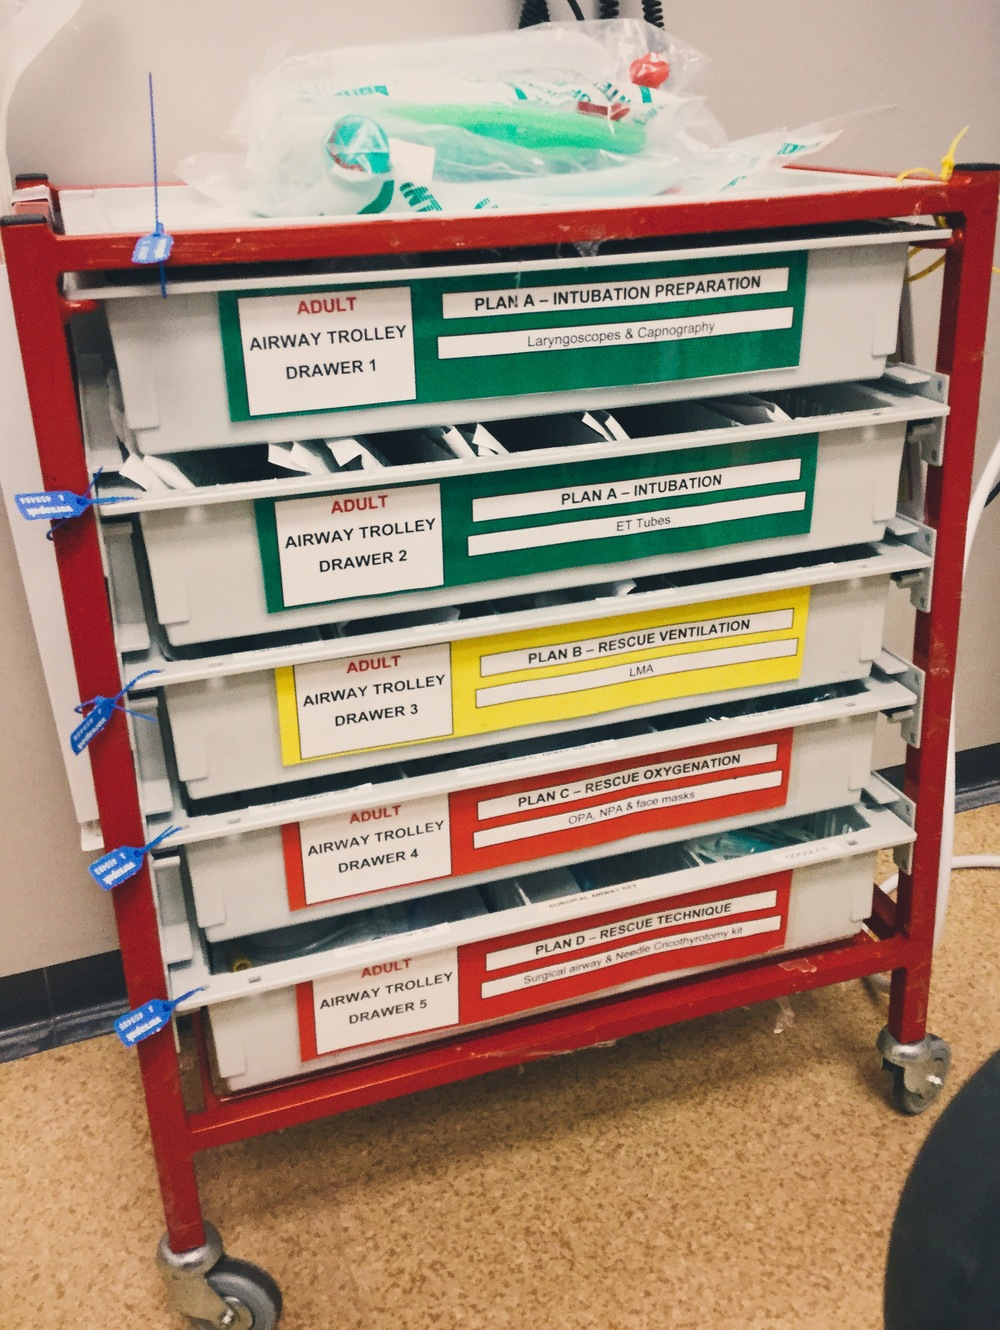 Standard Airway trolley